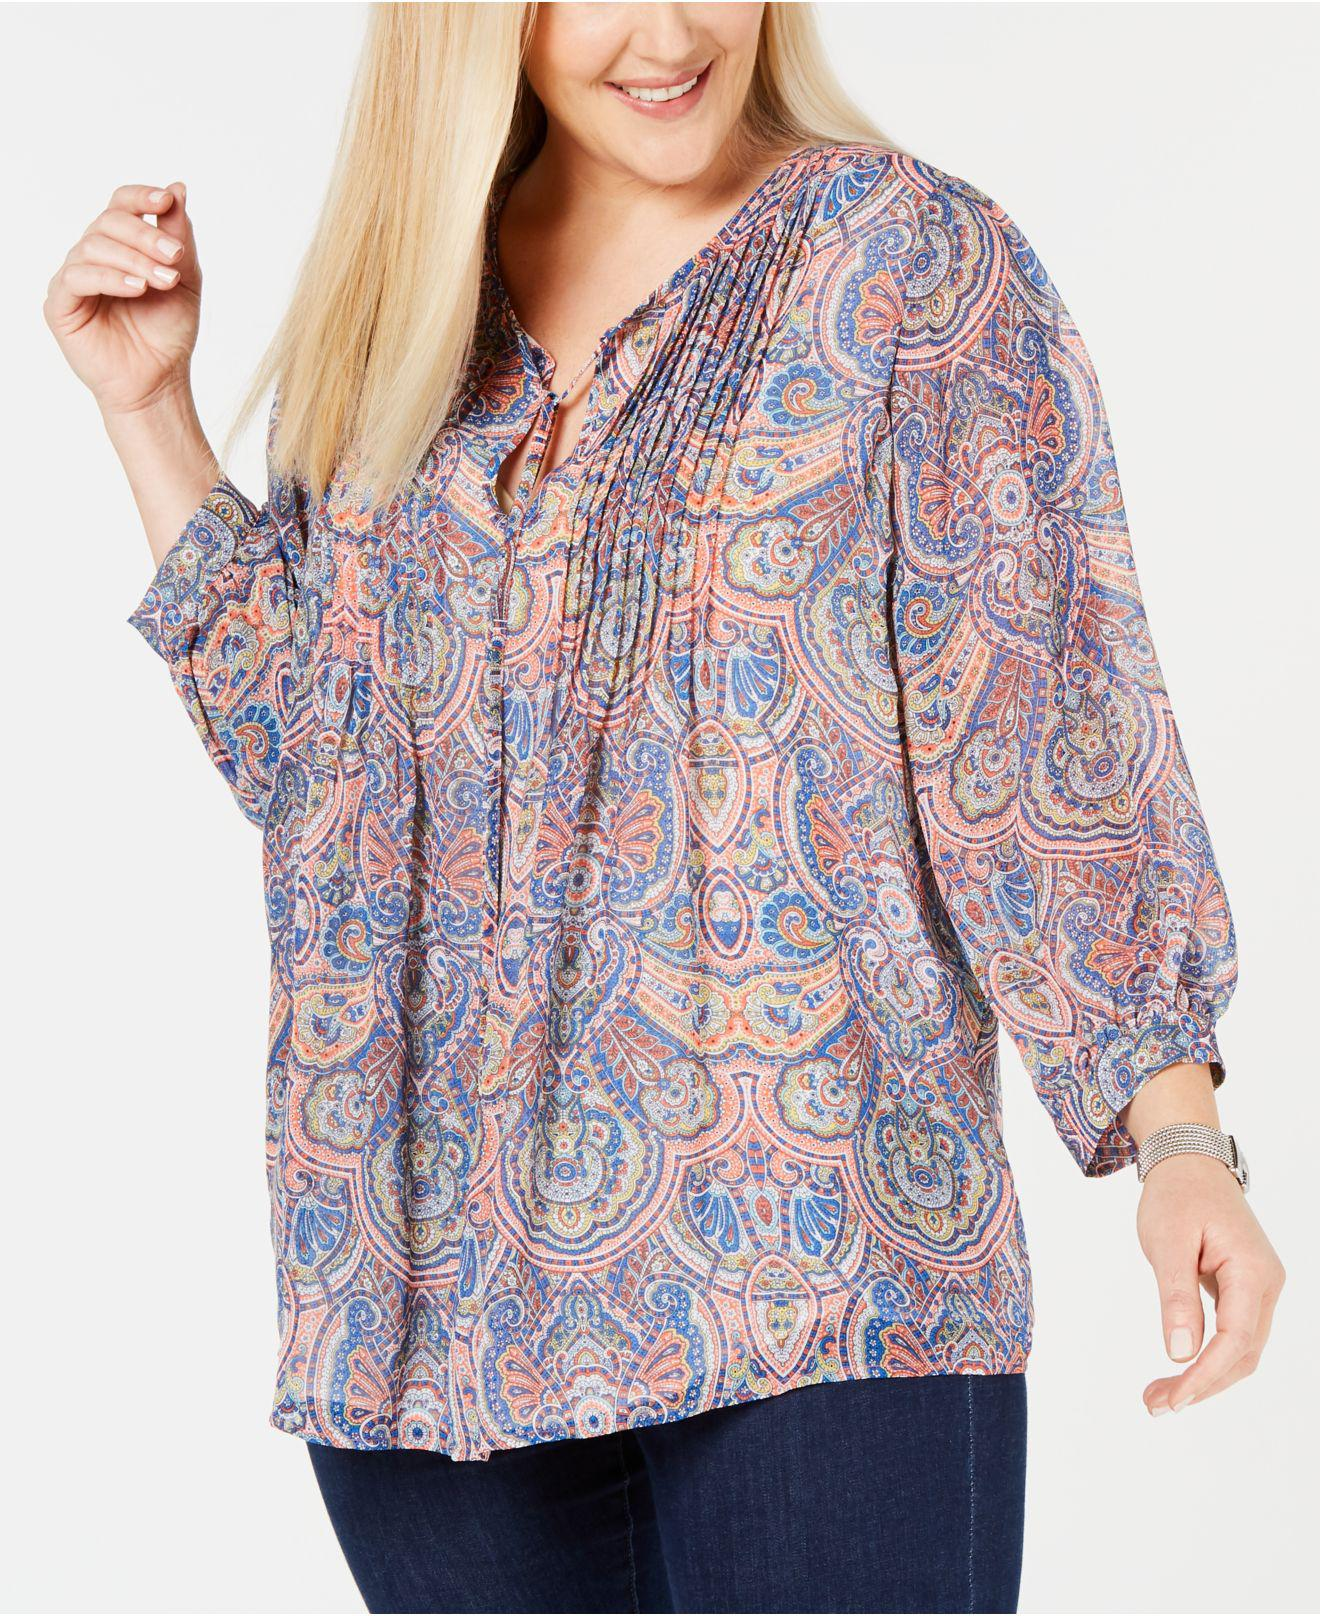 c8d451124dceb8 Tommy Hilfiger. Women s Plus Size Paisley-print Pintucked Top ...